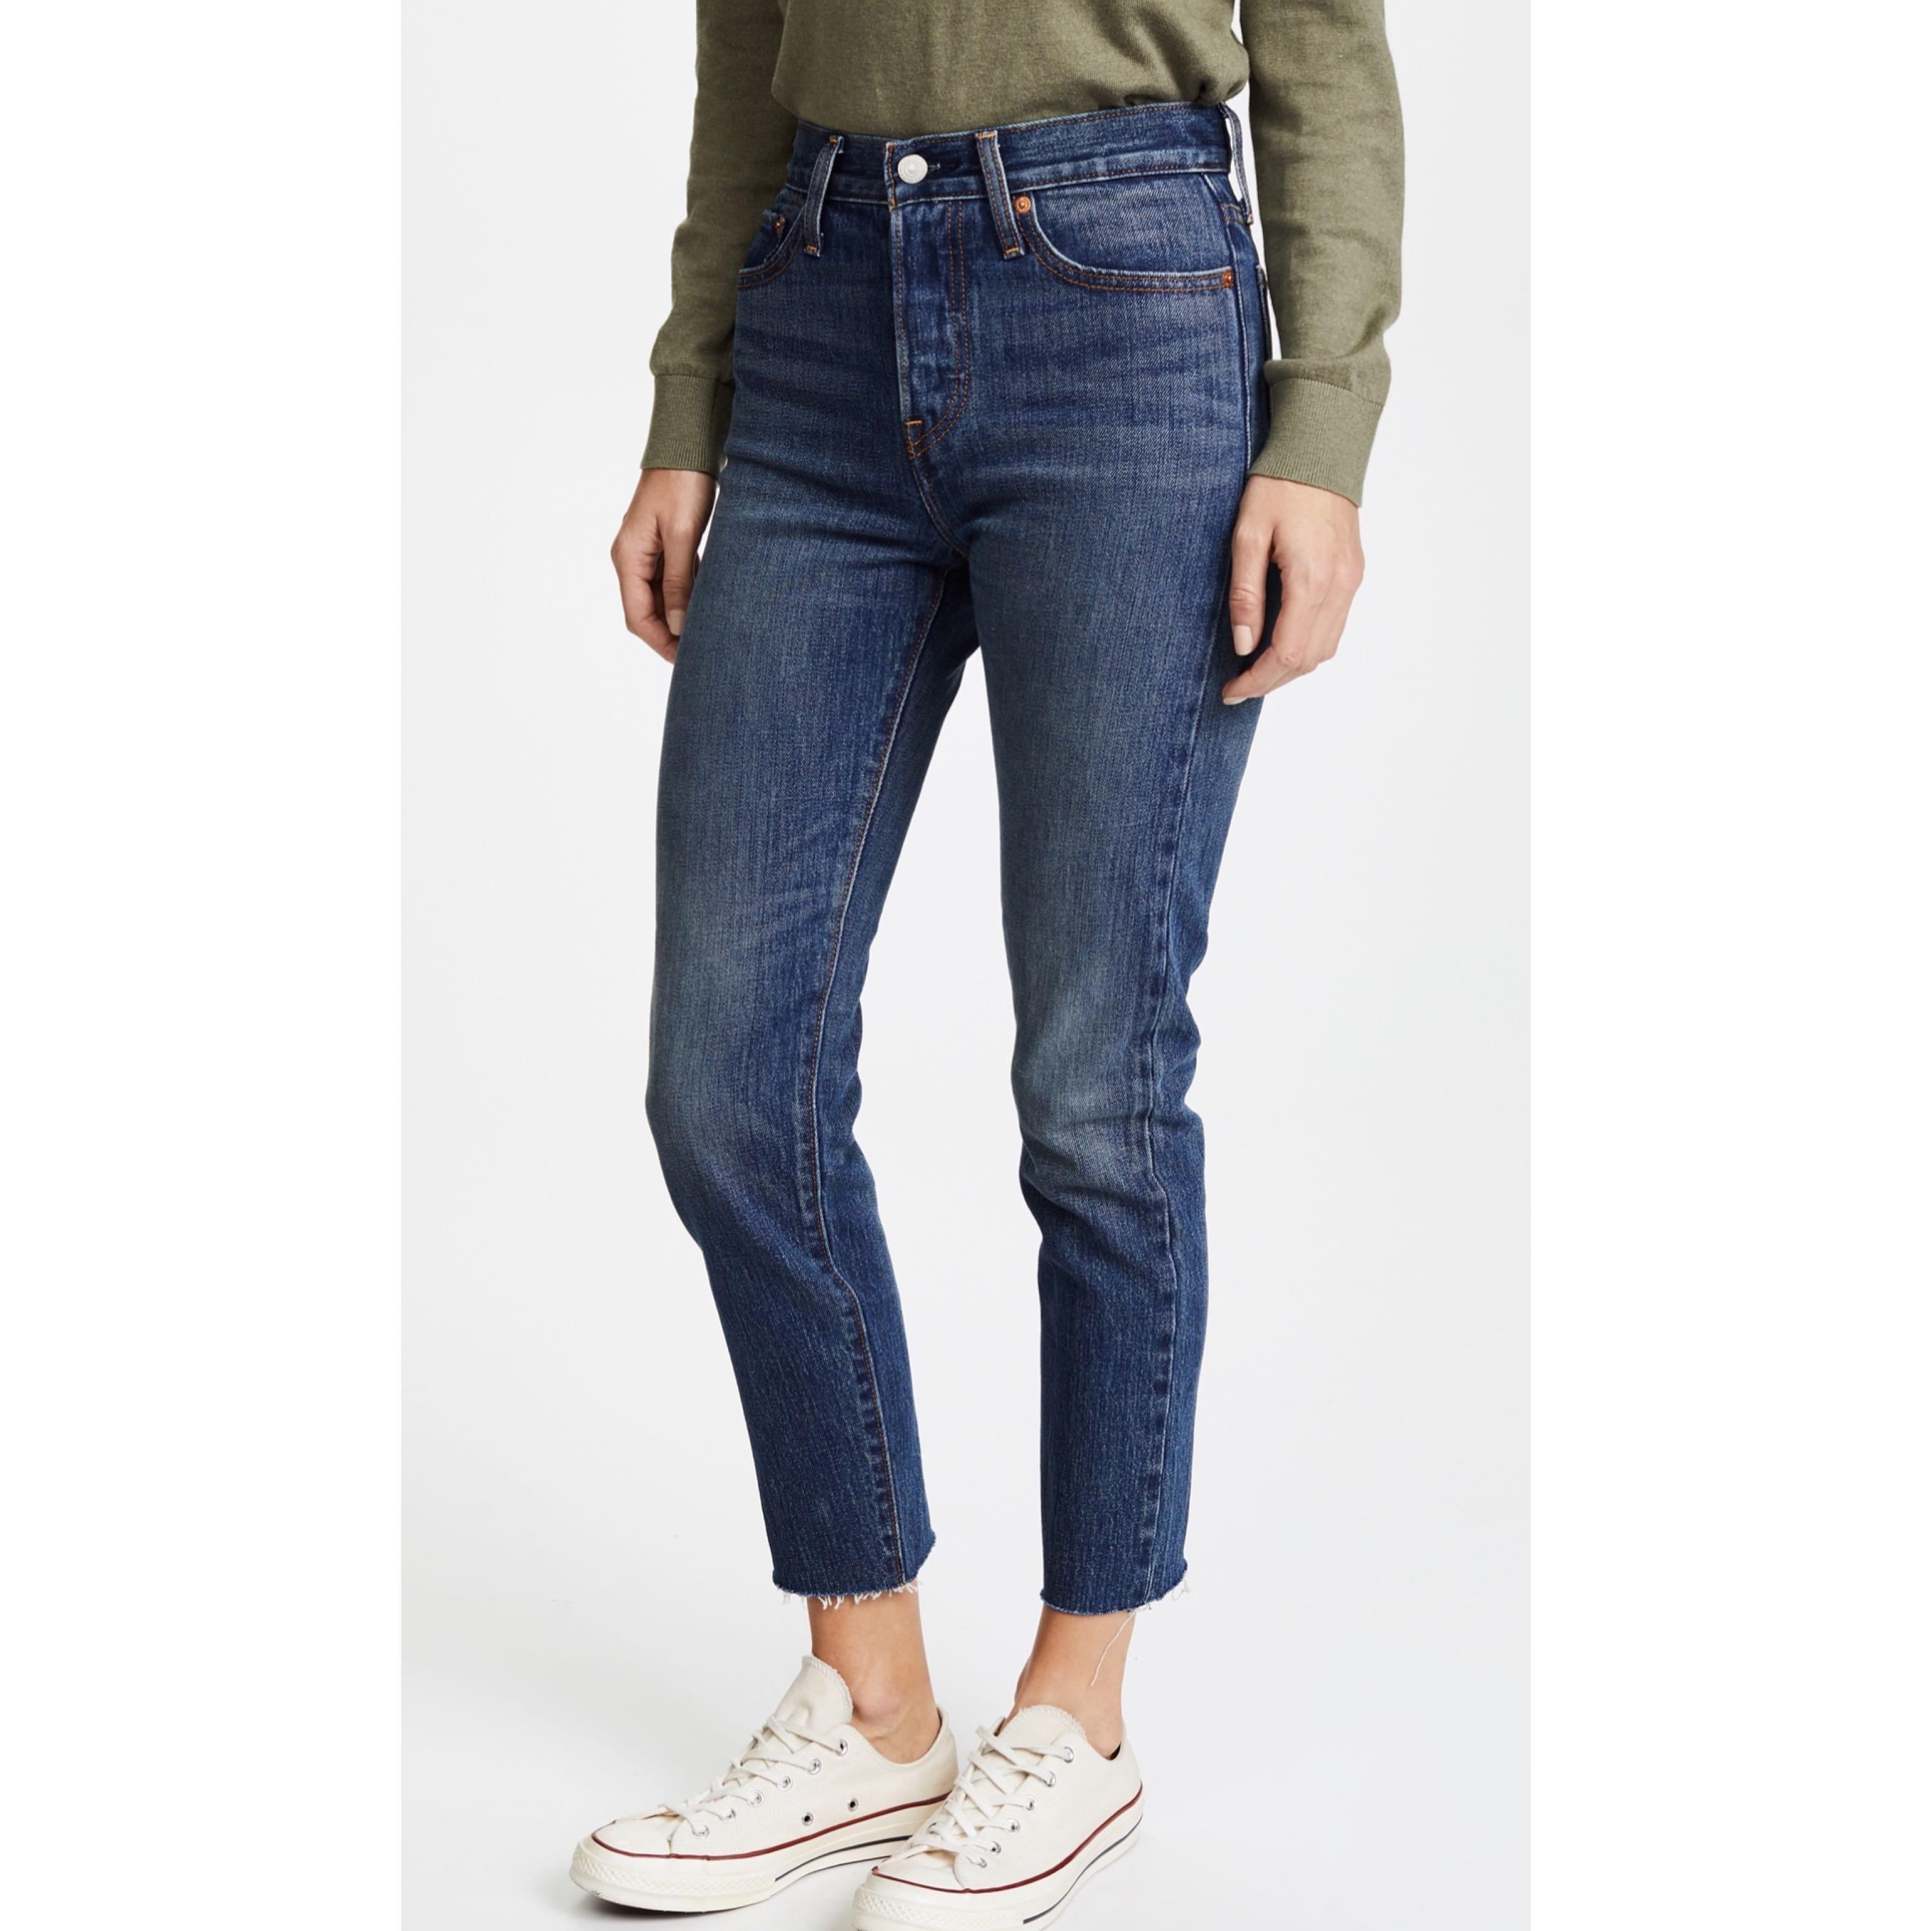 Levi's Wedgie Jeans (27)